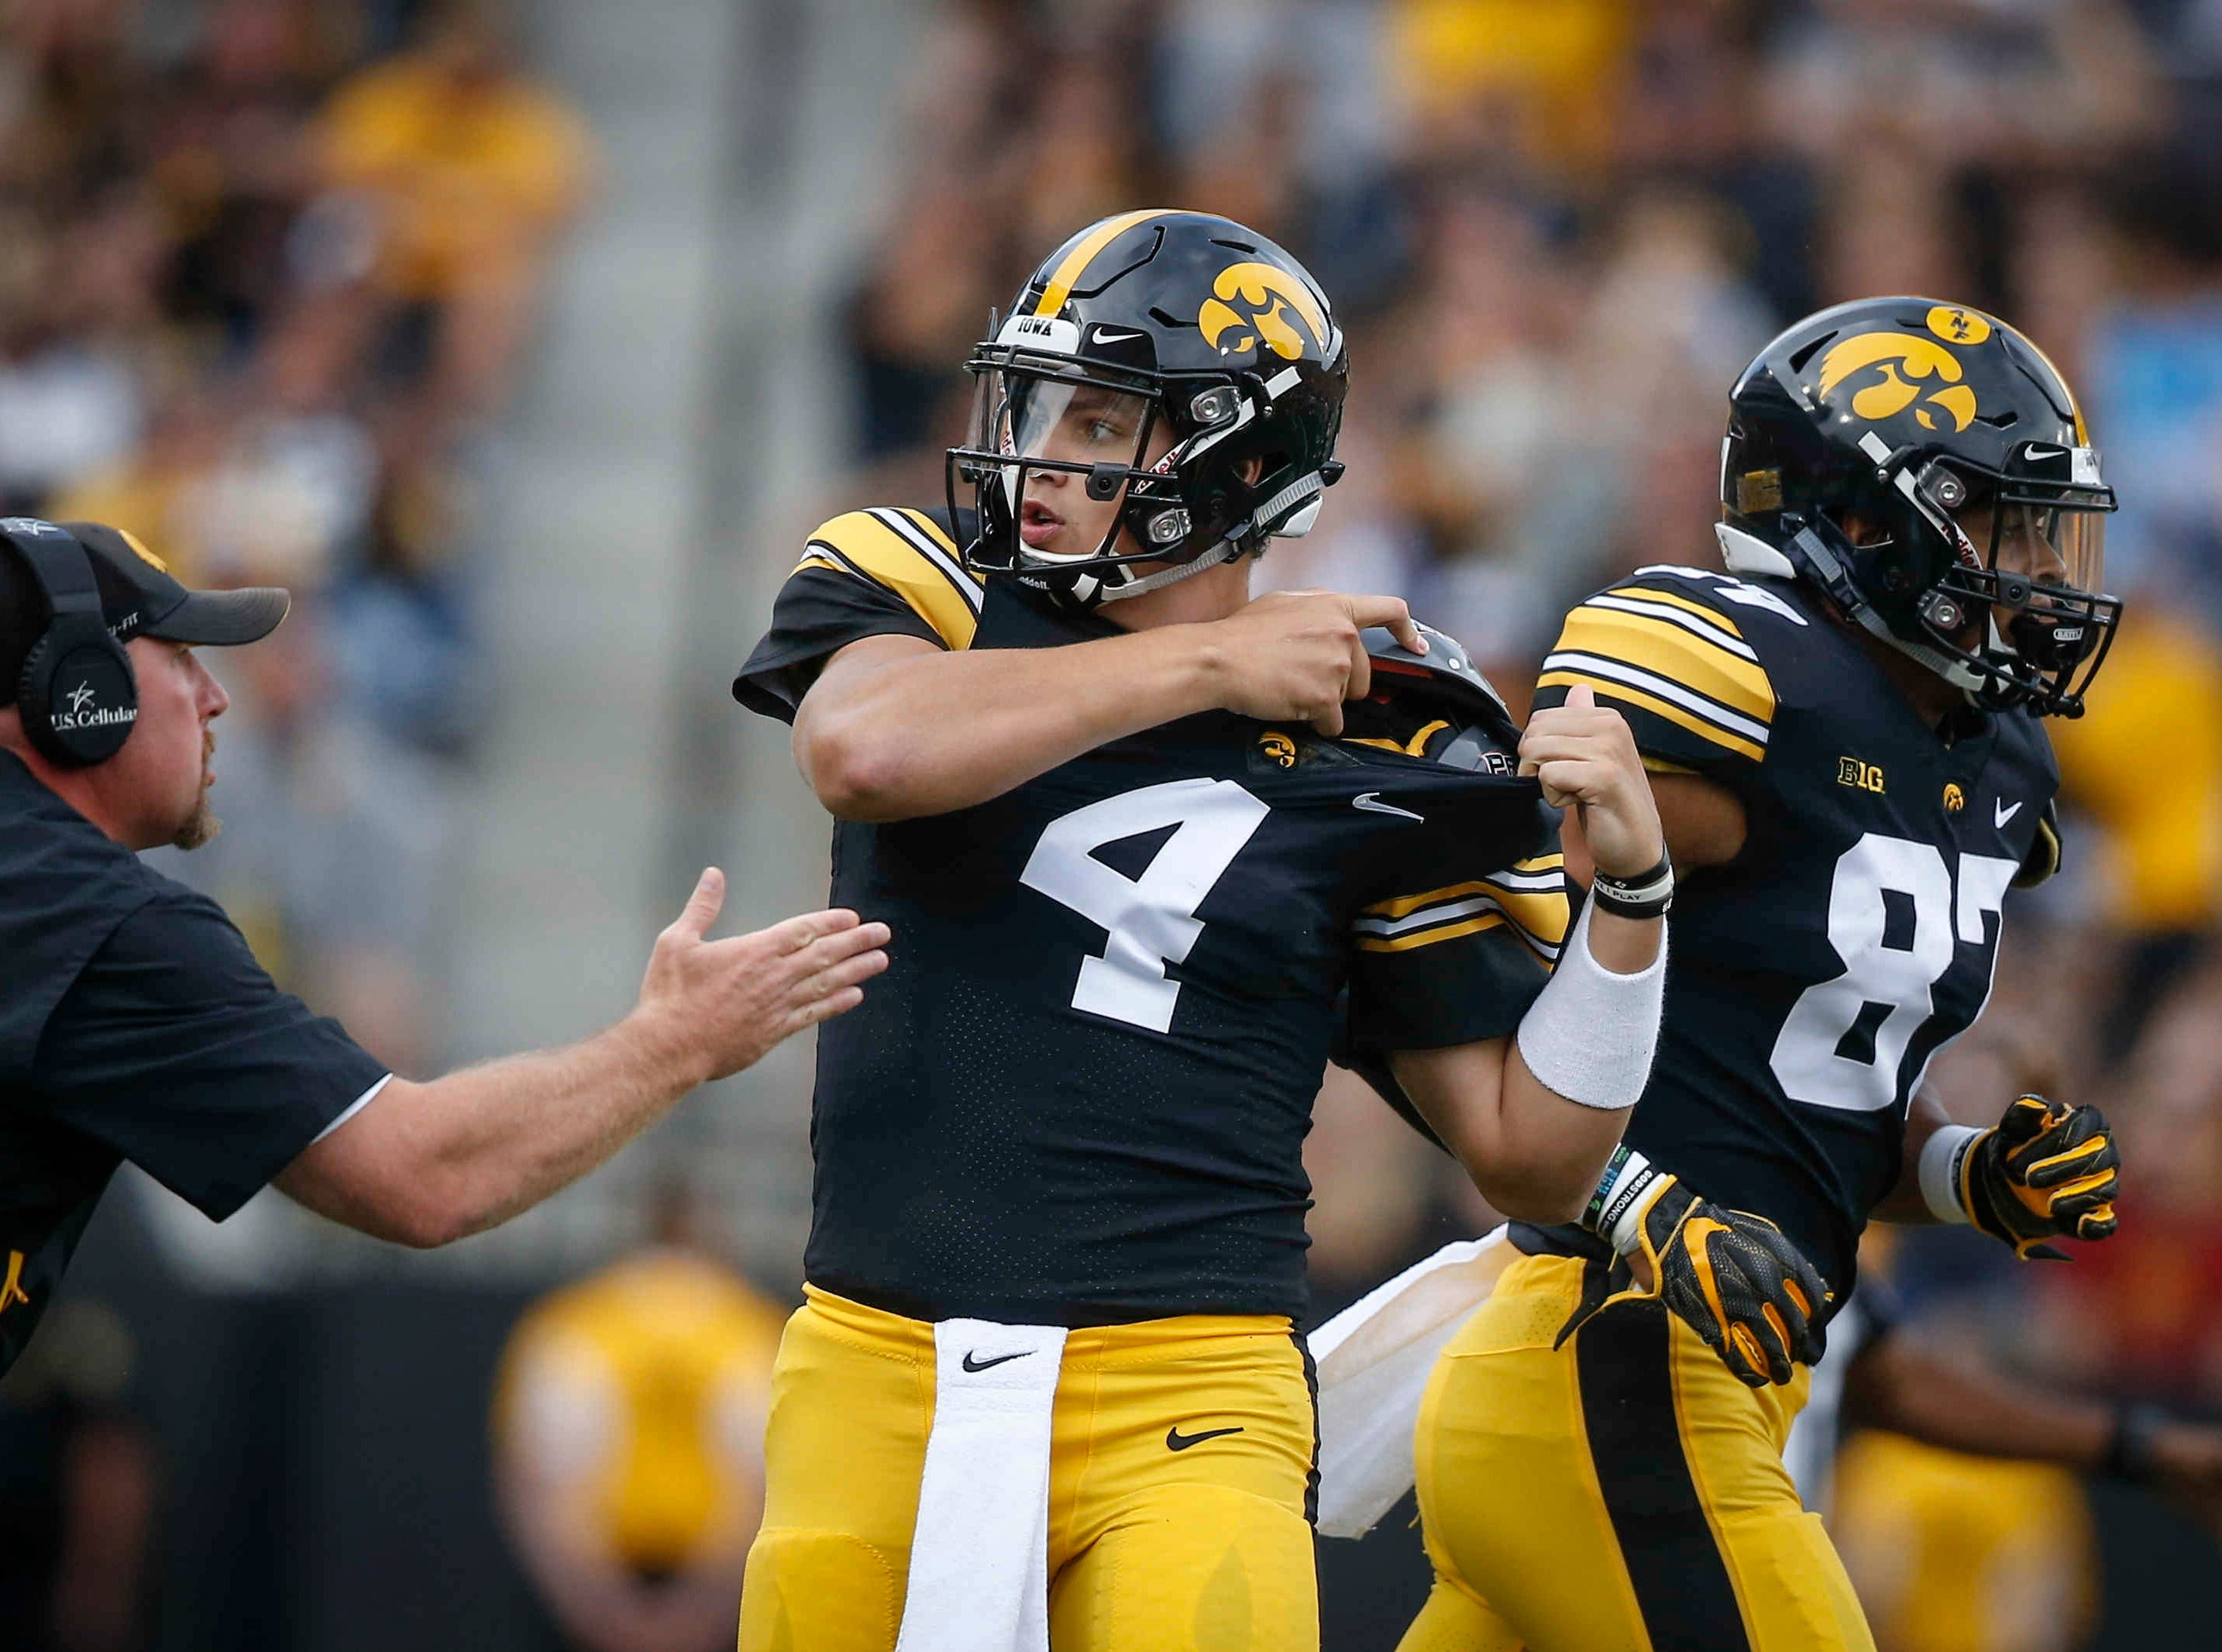 Iowa quarterback Nate Stanley adjusts his shoulder pads after scrambling for a first down run against Iowa State on Saturday, Sept. 8, 2018, at Kinnick Stadium in Iowa City.